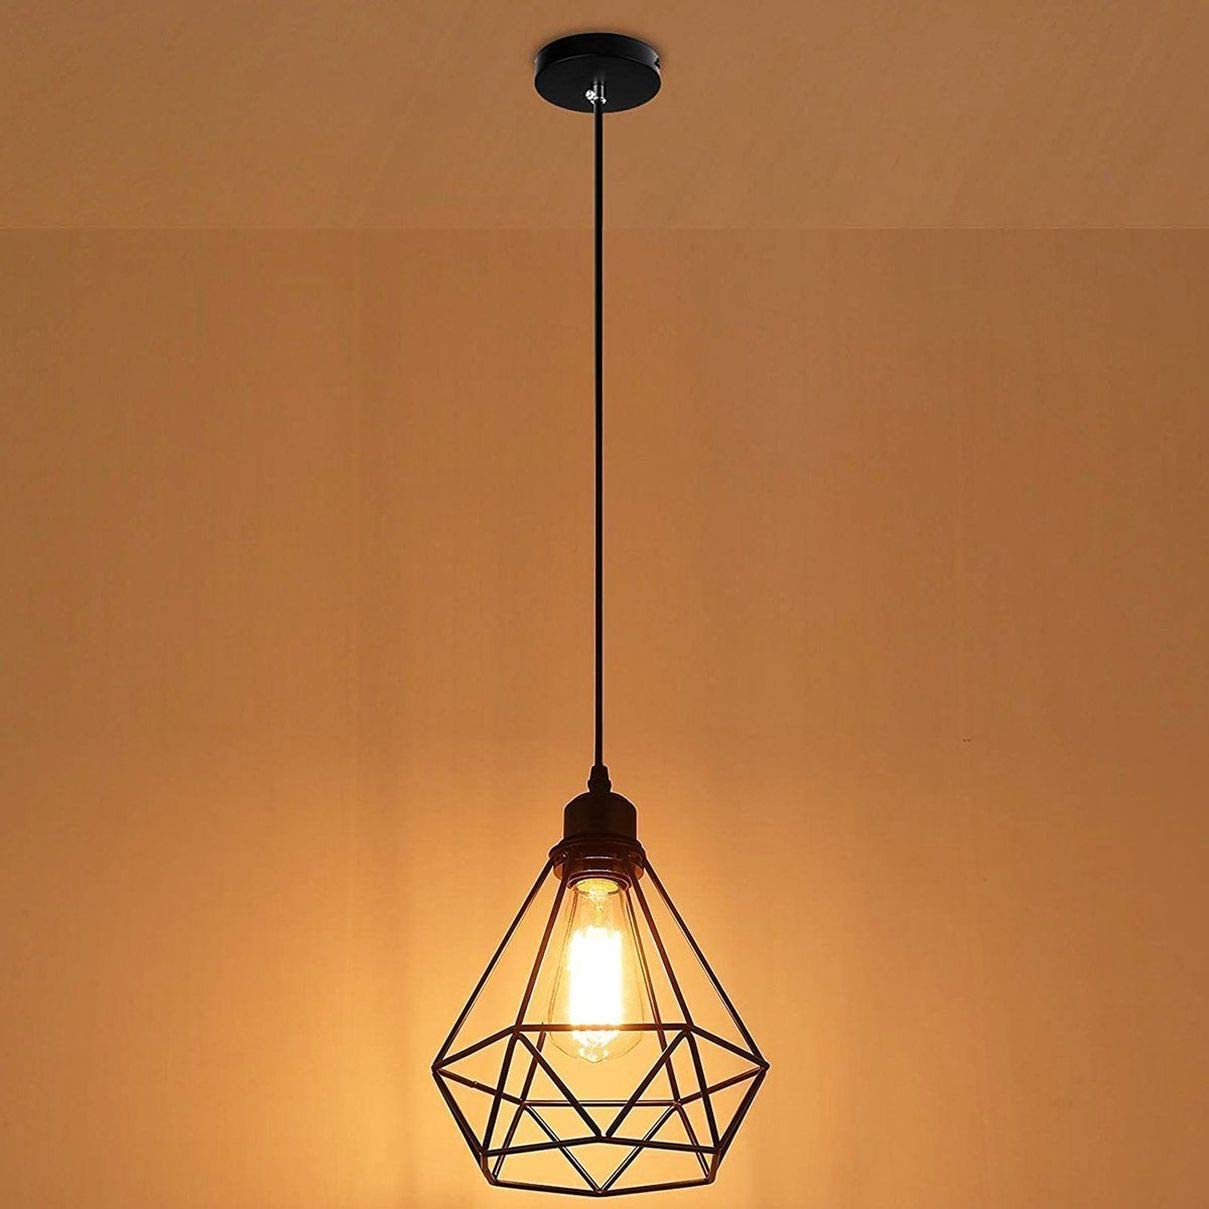 Tools Home Improvement Pendant Lights Motent Industrial Ecopower Lighting Antique Holders Iron Wire Diamonds Shape Open Style For Ceiling Fan Light Bulb Covers Pendant Lighting Fixture Wall Lamp Vintage Metal Bulb